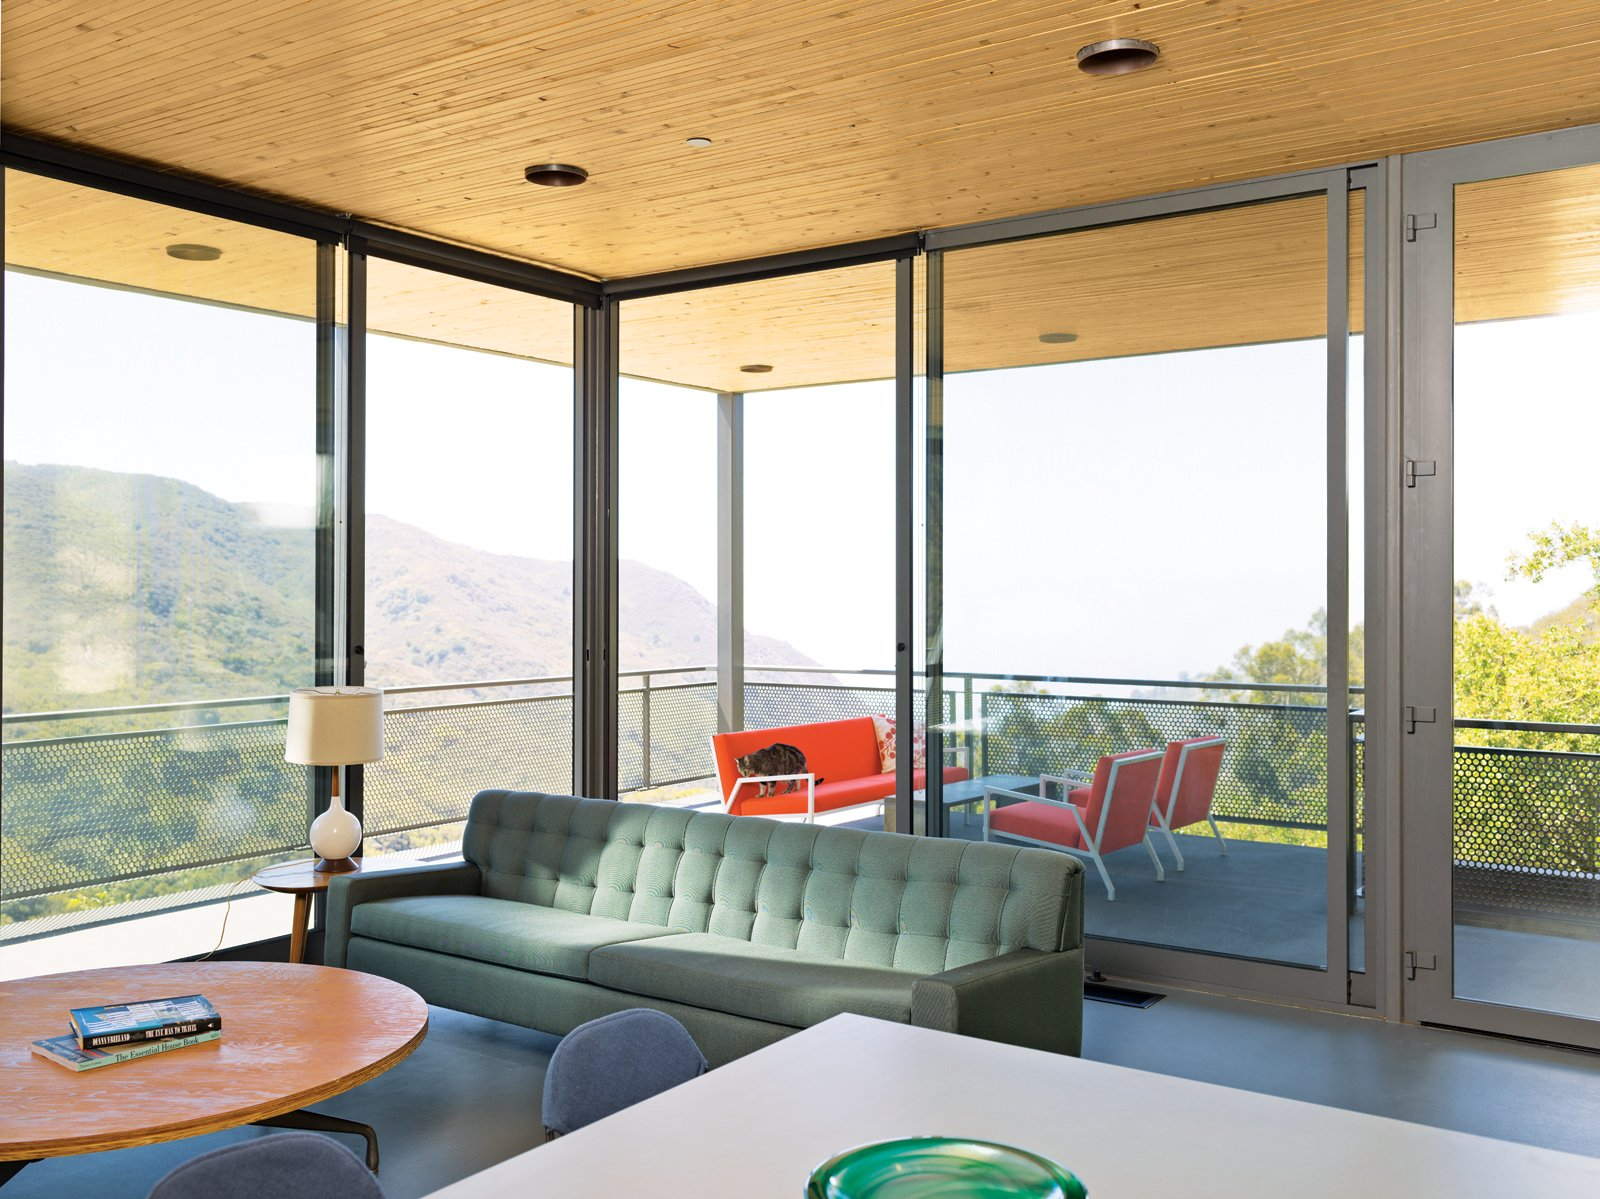 The sofa and lights in the open-plan living, dining, and kitchen area are vintage.